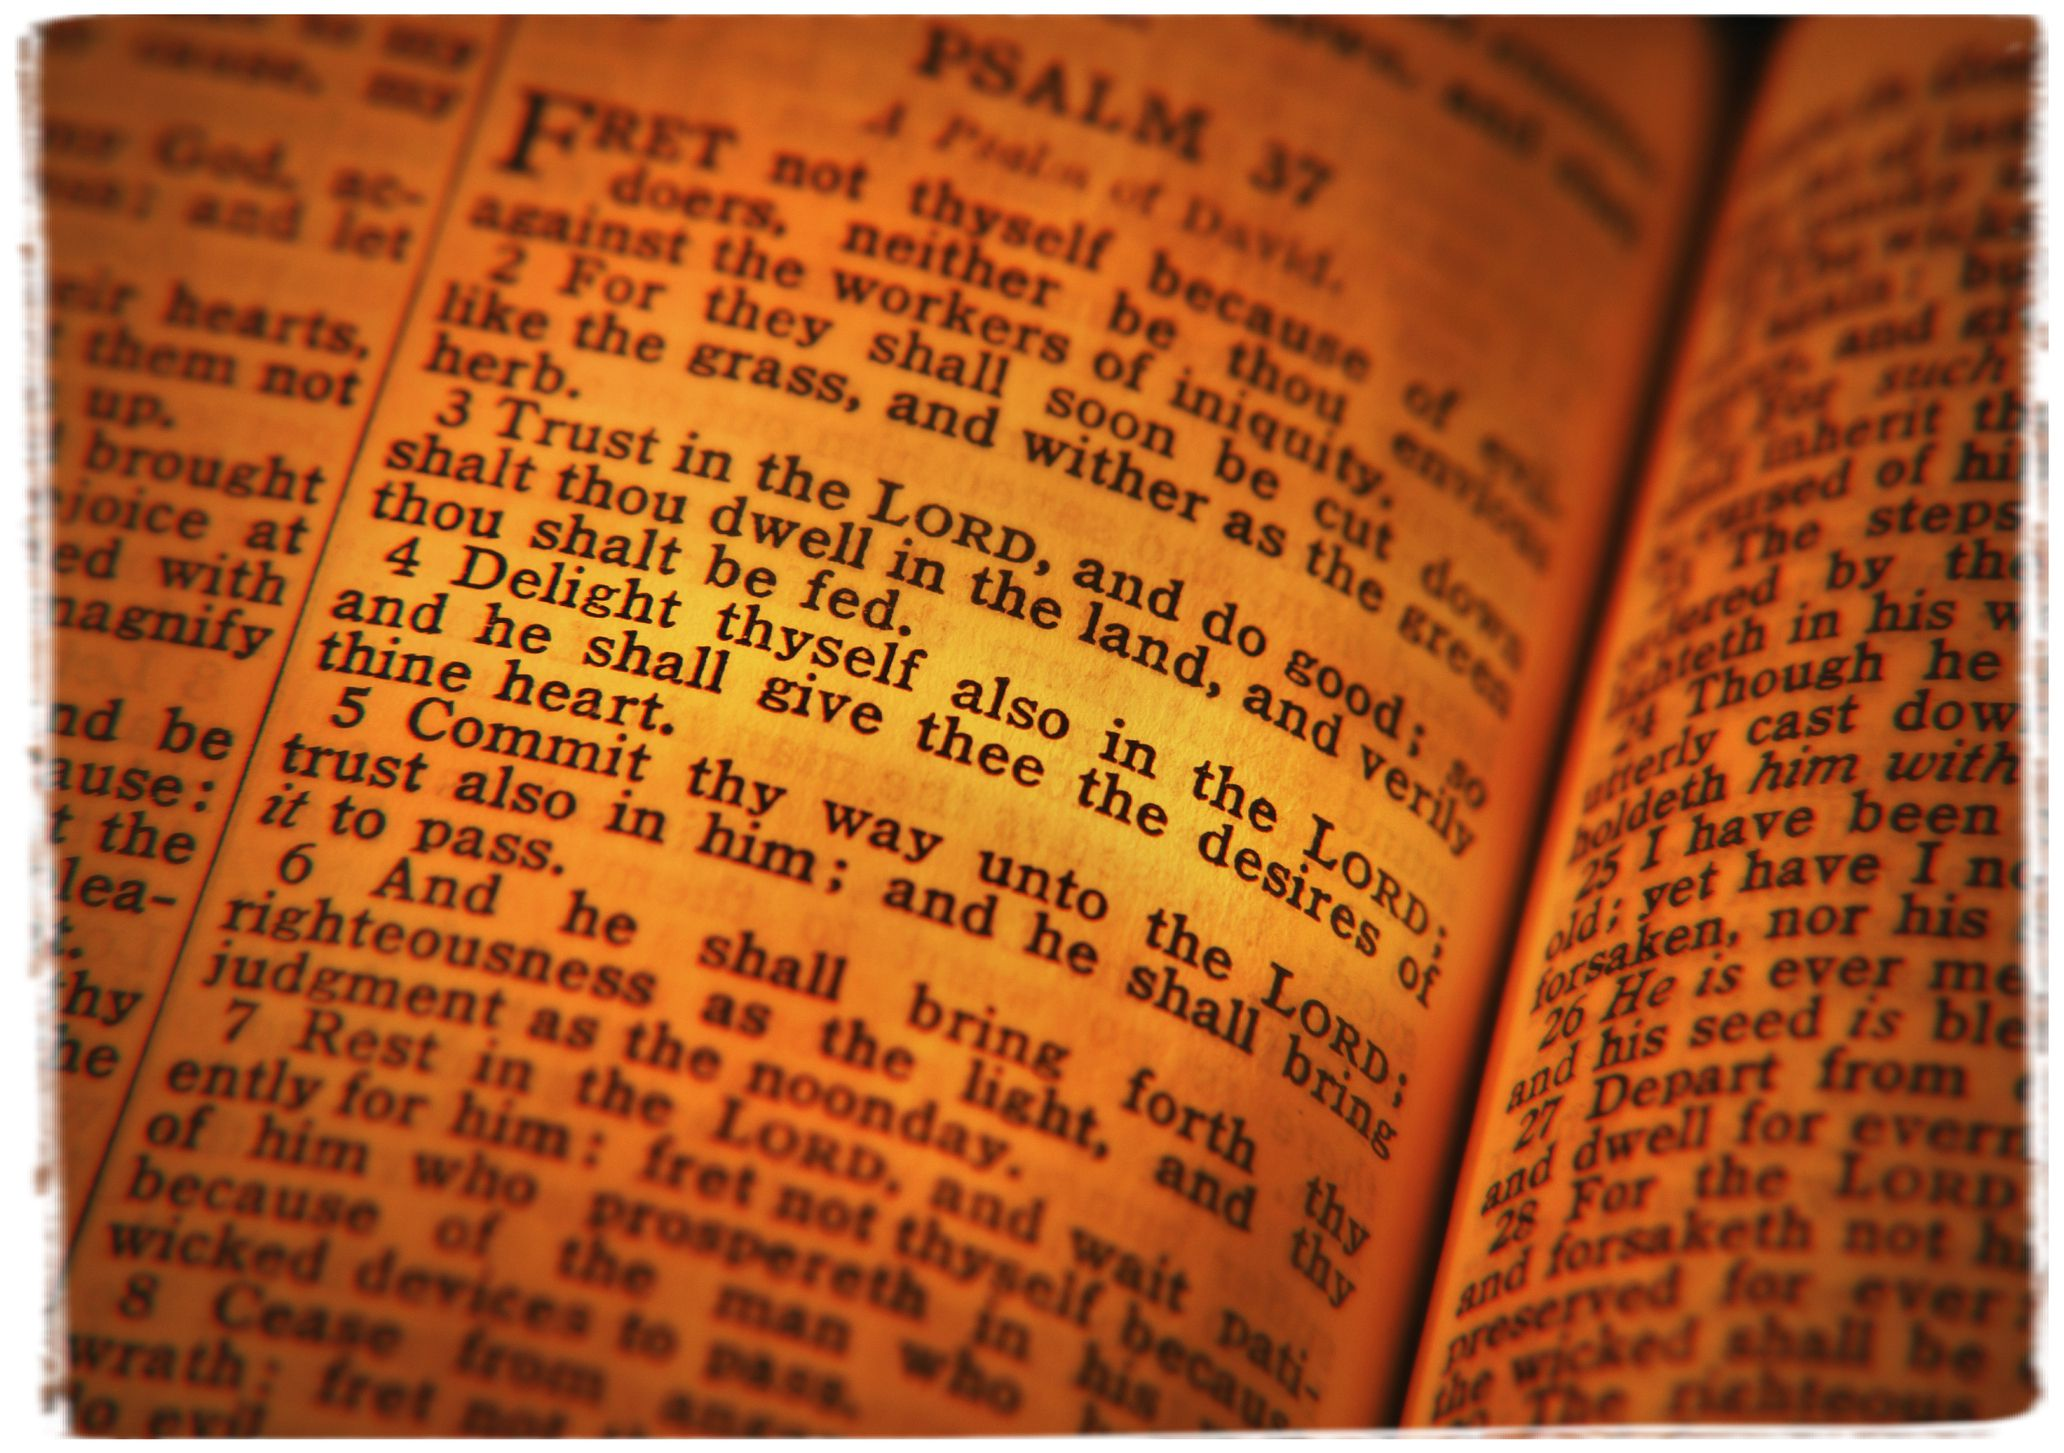 Bible Verses on Rejection to Bring Us fort